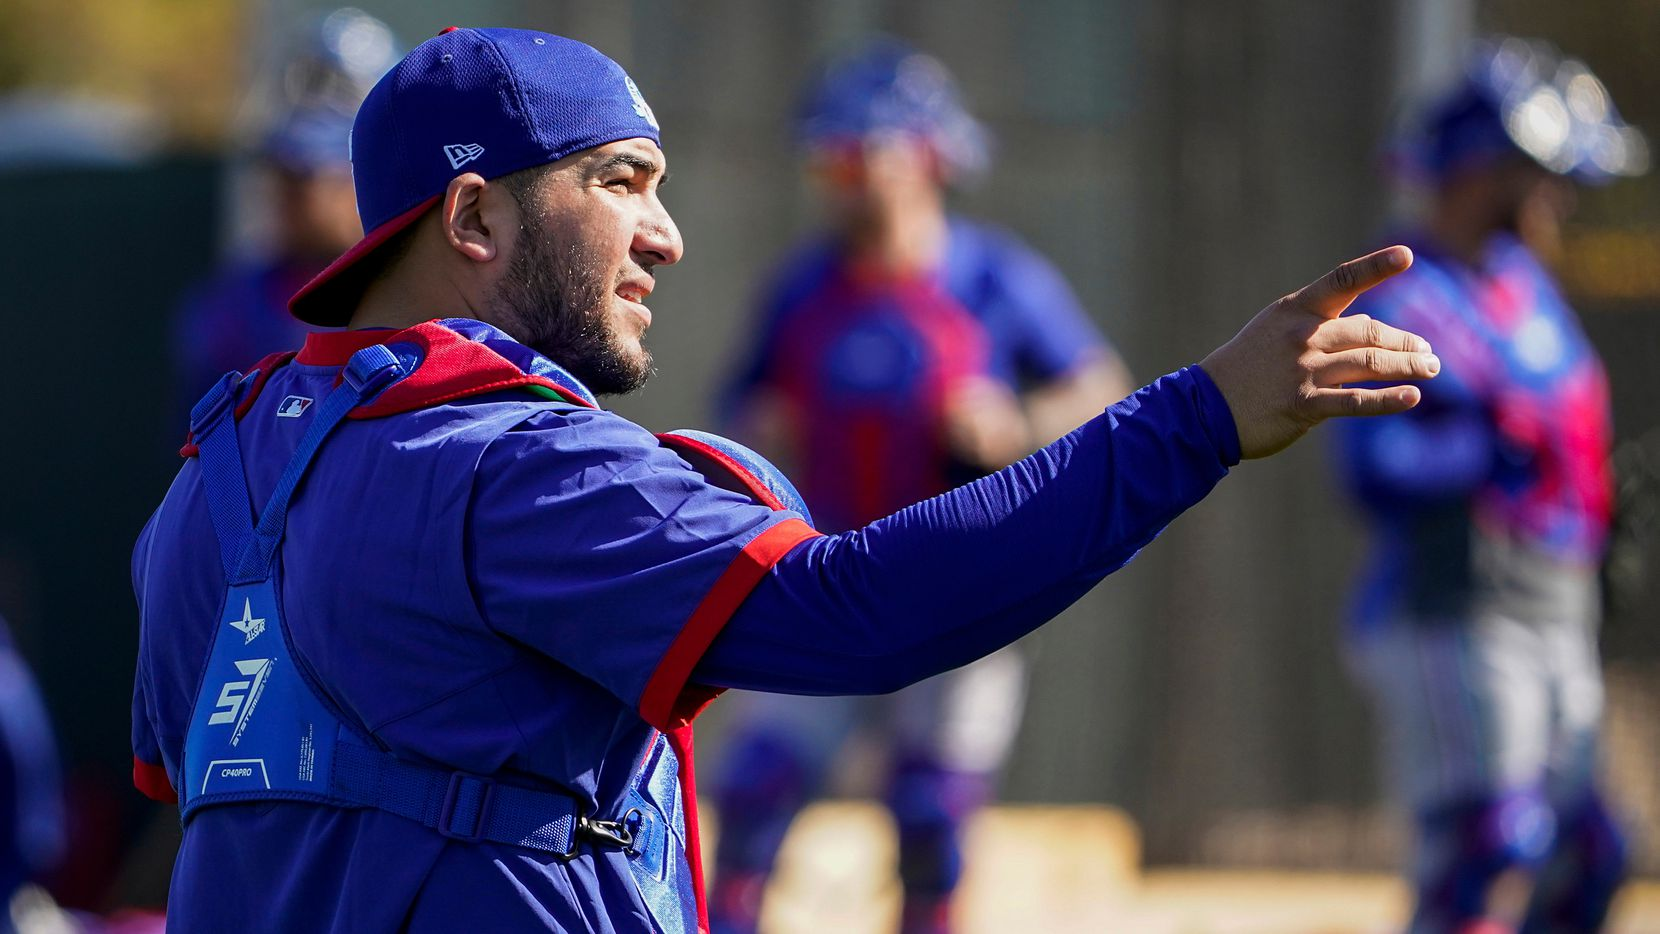 Texas Rangers catcher Jose Trevino works in the bullpen during a training workout at the team's training facility on Thursday, Feb. 13, 2020, in Surprise, Ariz.